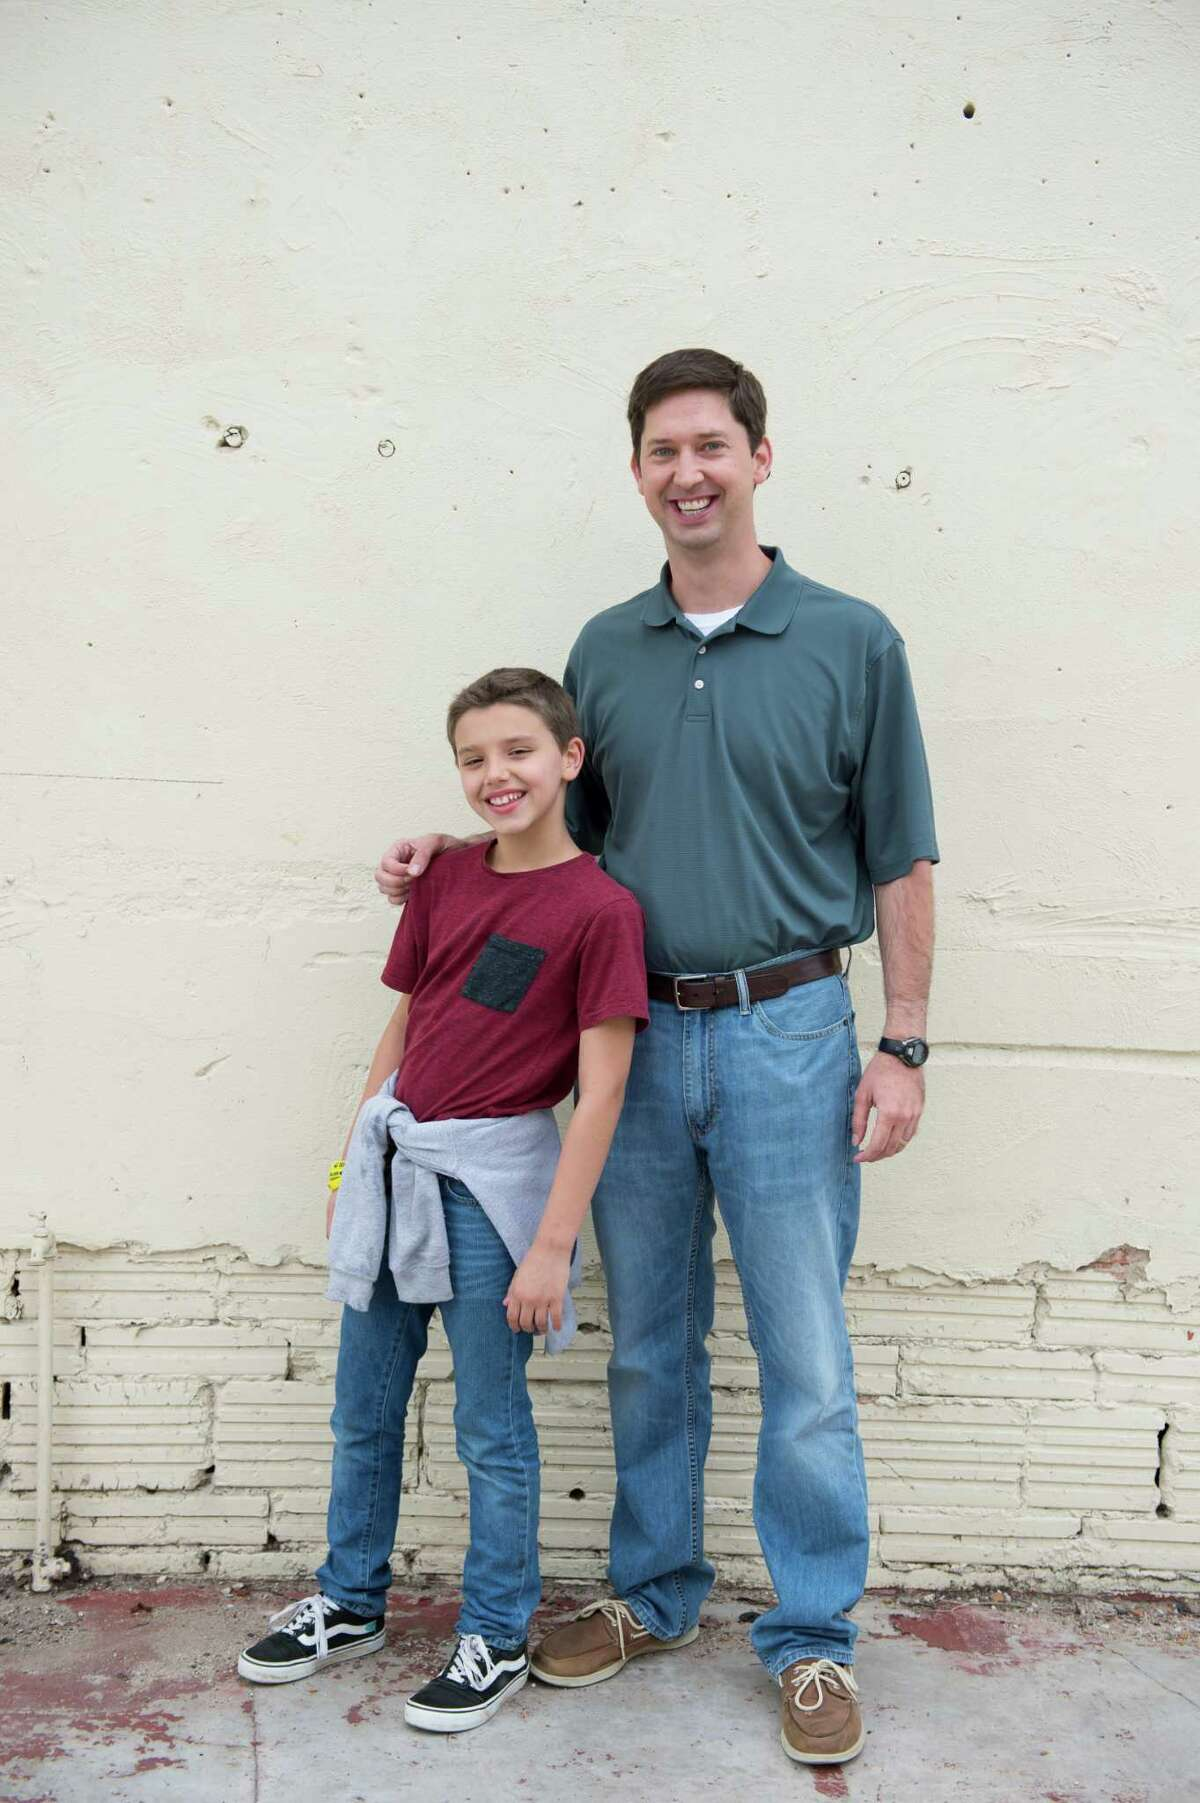 Timmy Conner and his mentor Cody Bartlett were paired through Project Mentor last year.